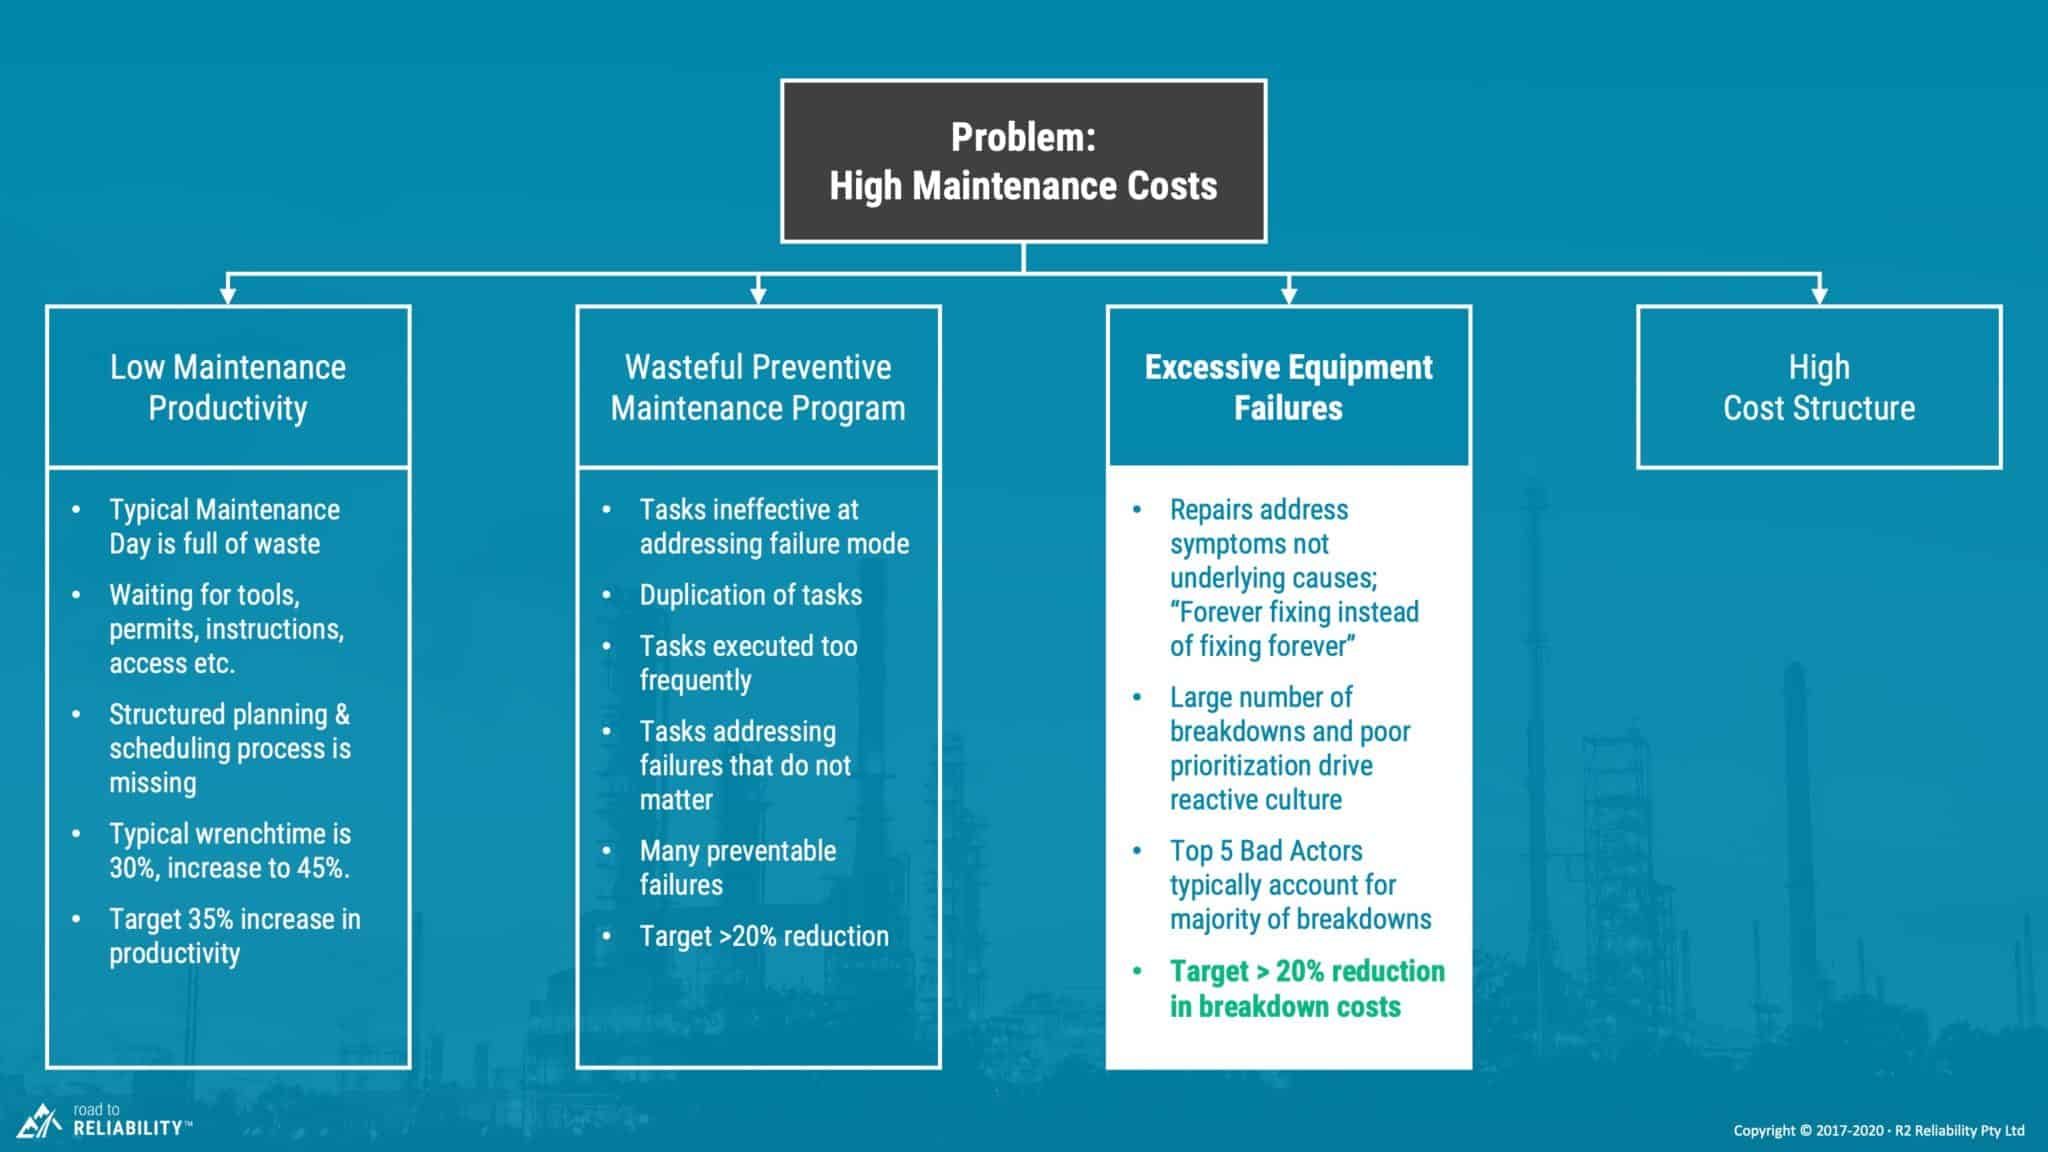 high maintenance costs due to repeat failures